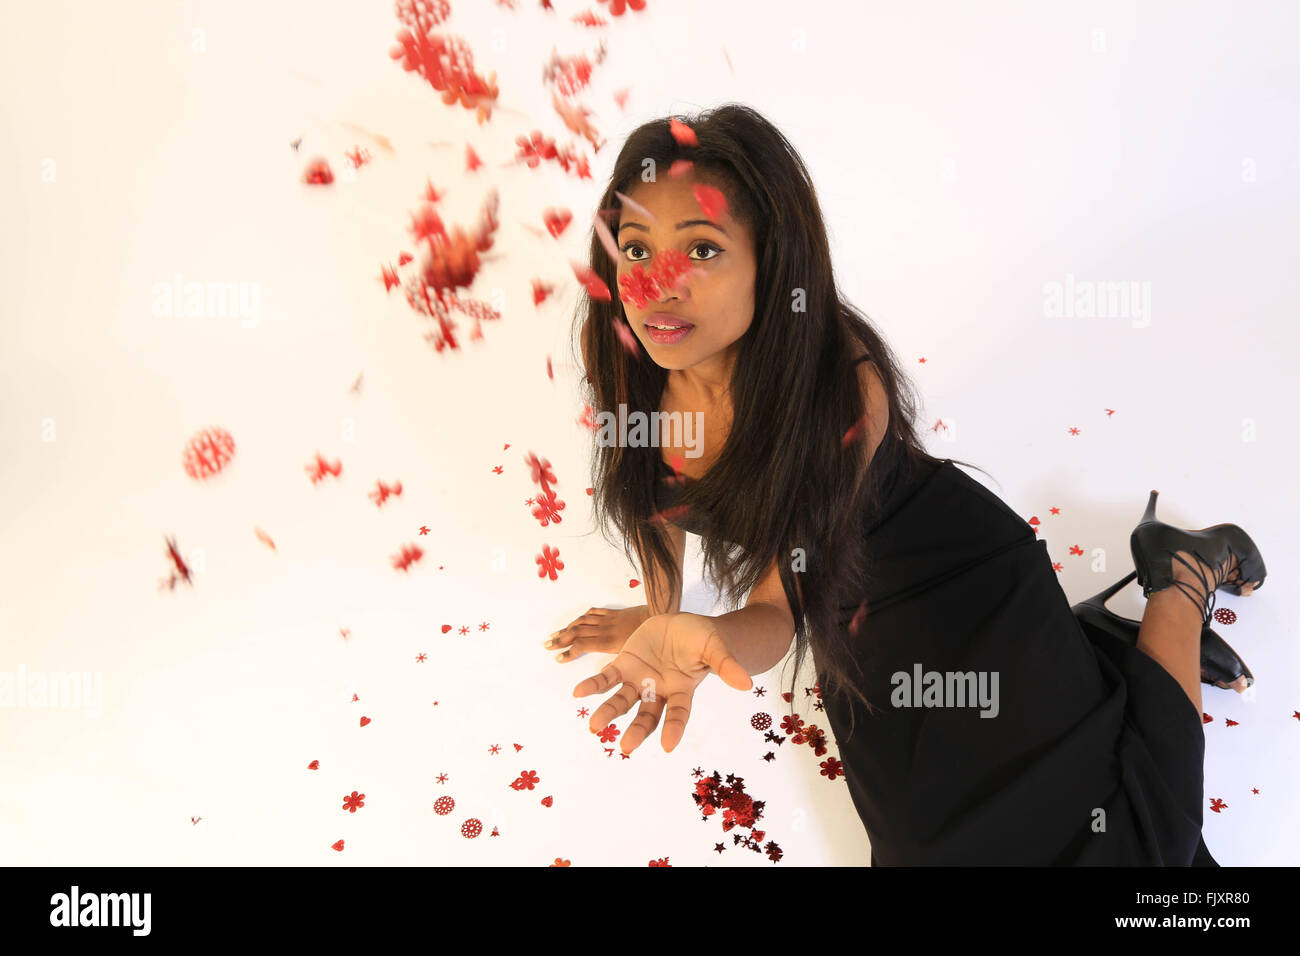 High Angle View Of Fashion Model Throwing Artificial Leaves Over White Background - Stock Image